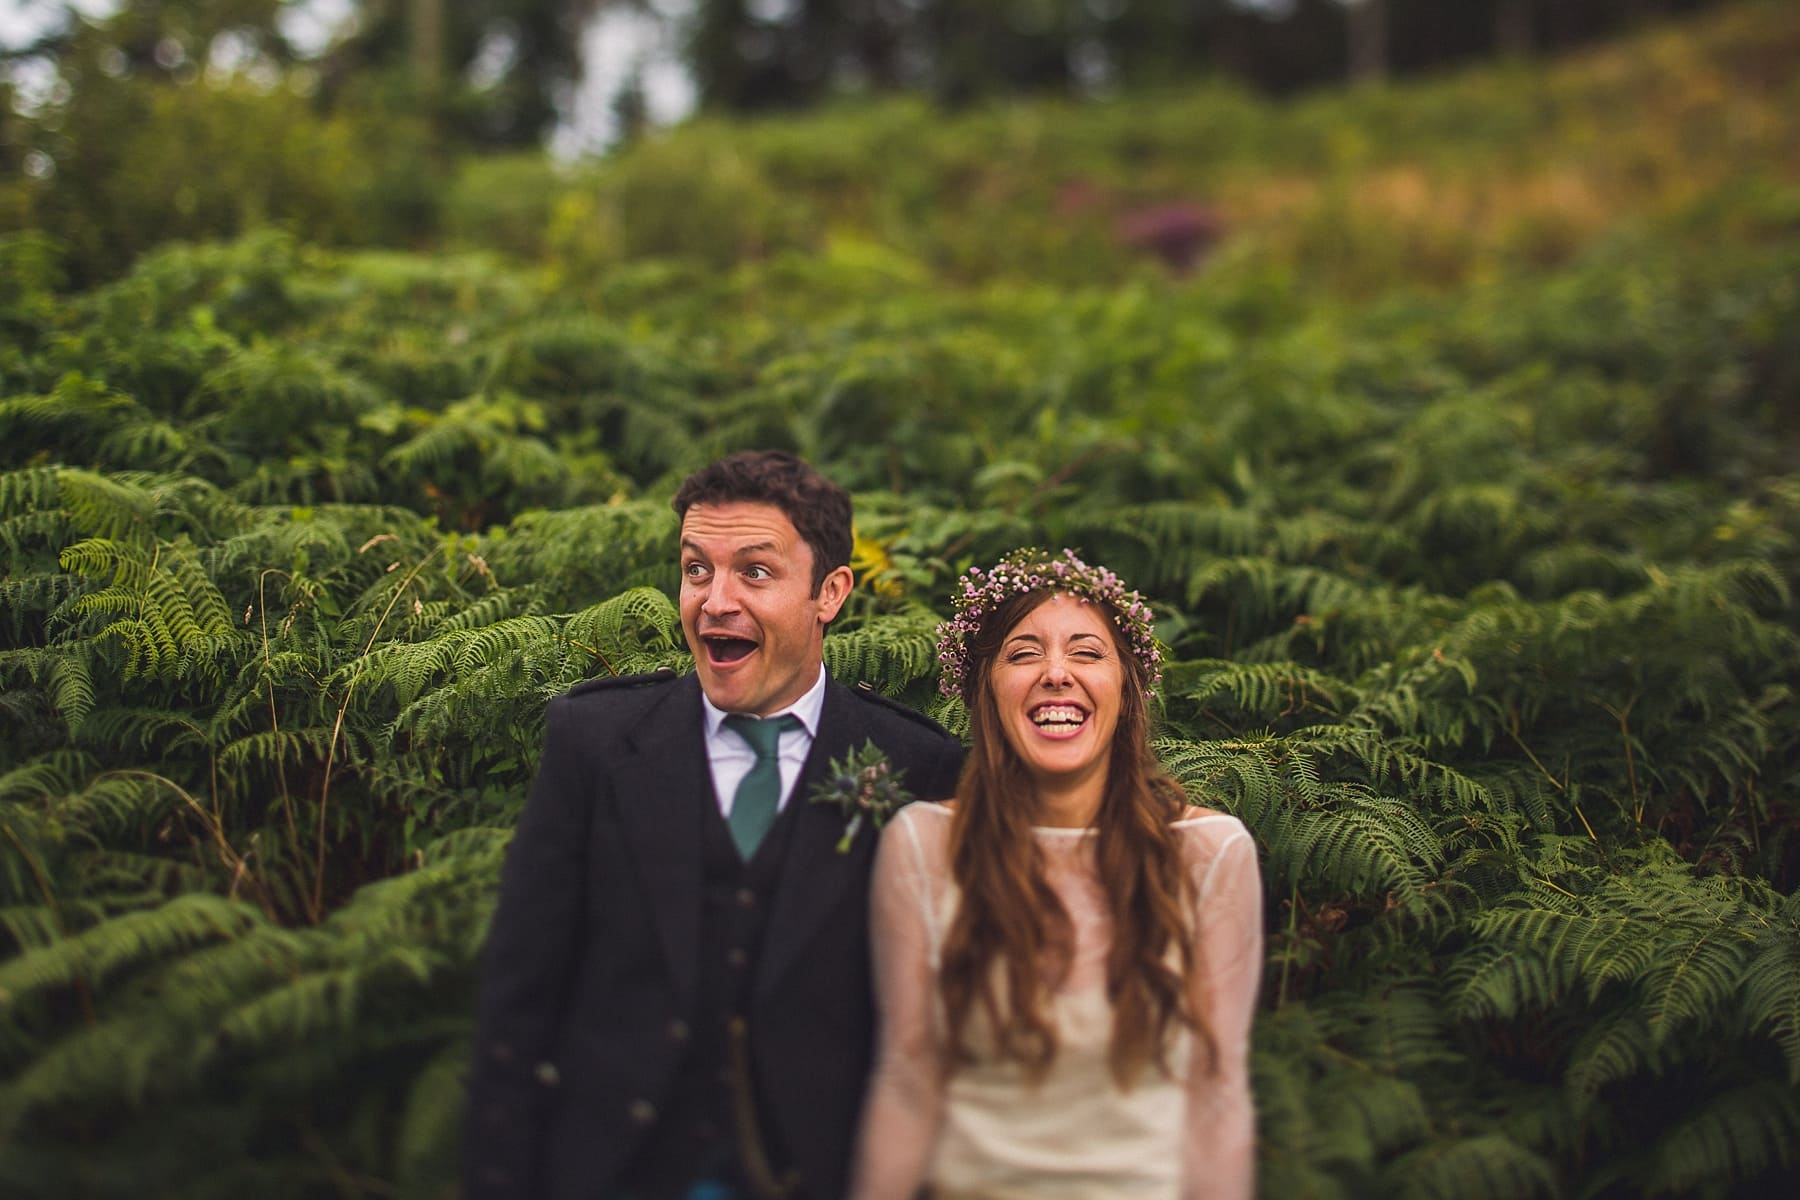 Happy couple,destination wedding photographer,irish elopement,bespoke wedding dress,adventure wedding,creative bride and groom,